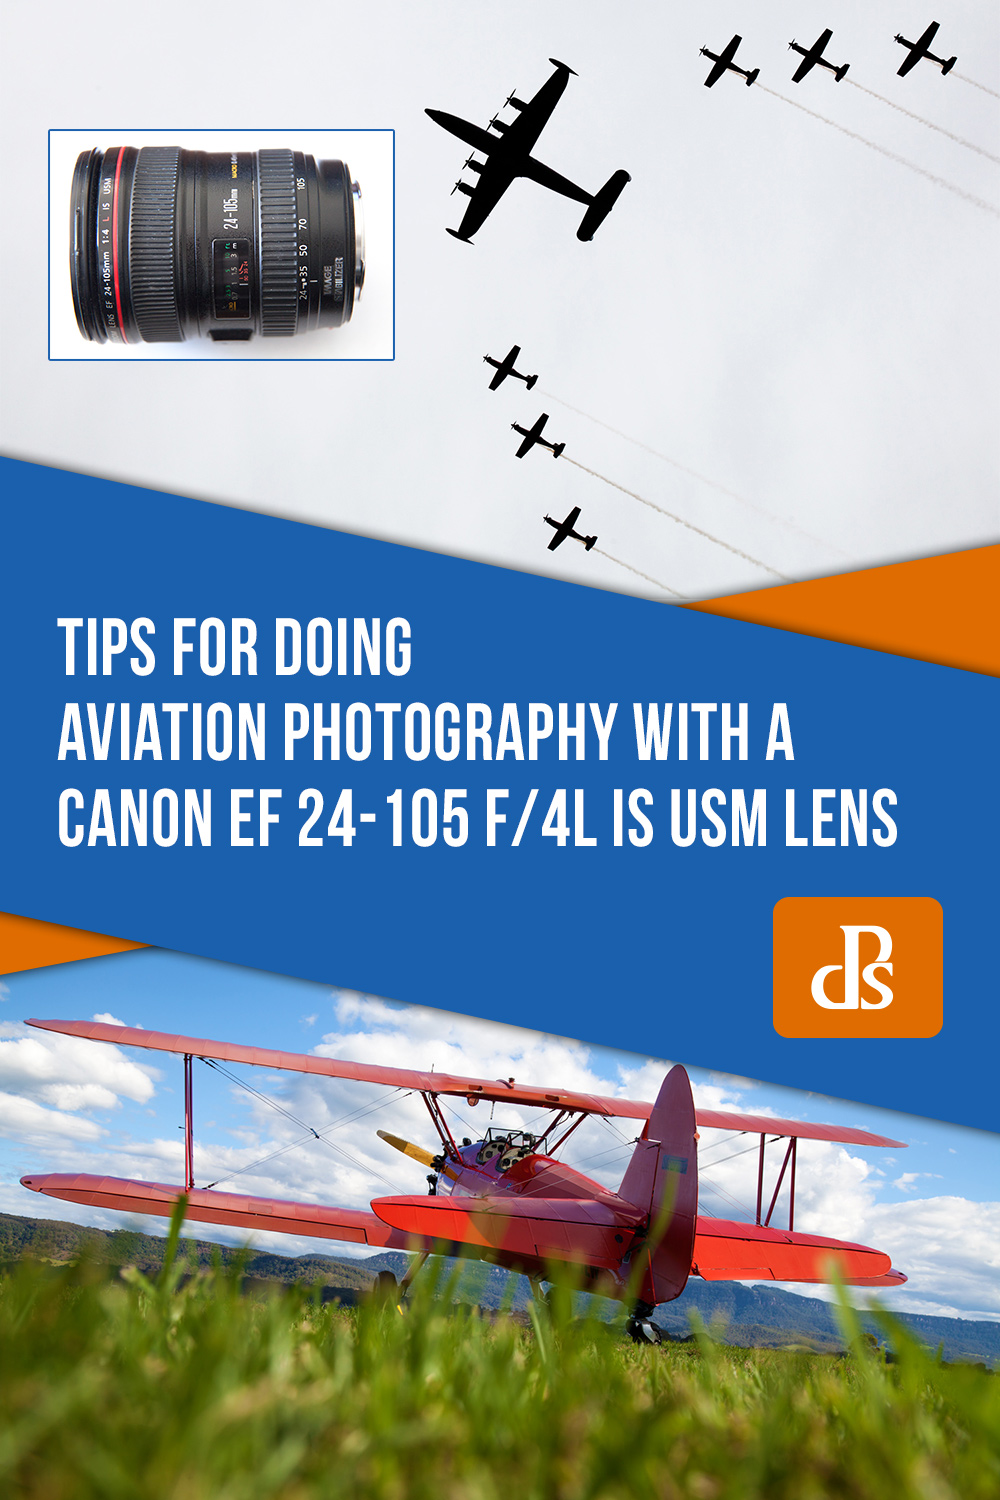 tips-for-aviation-photography